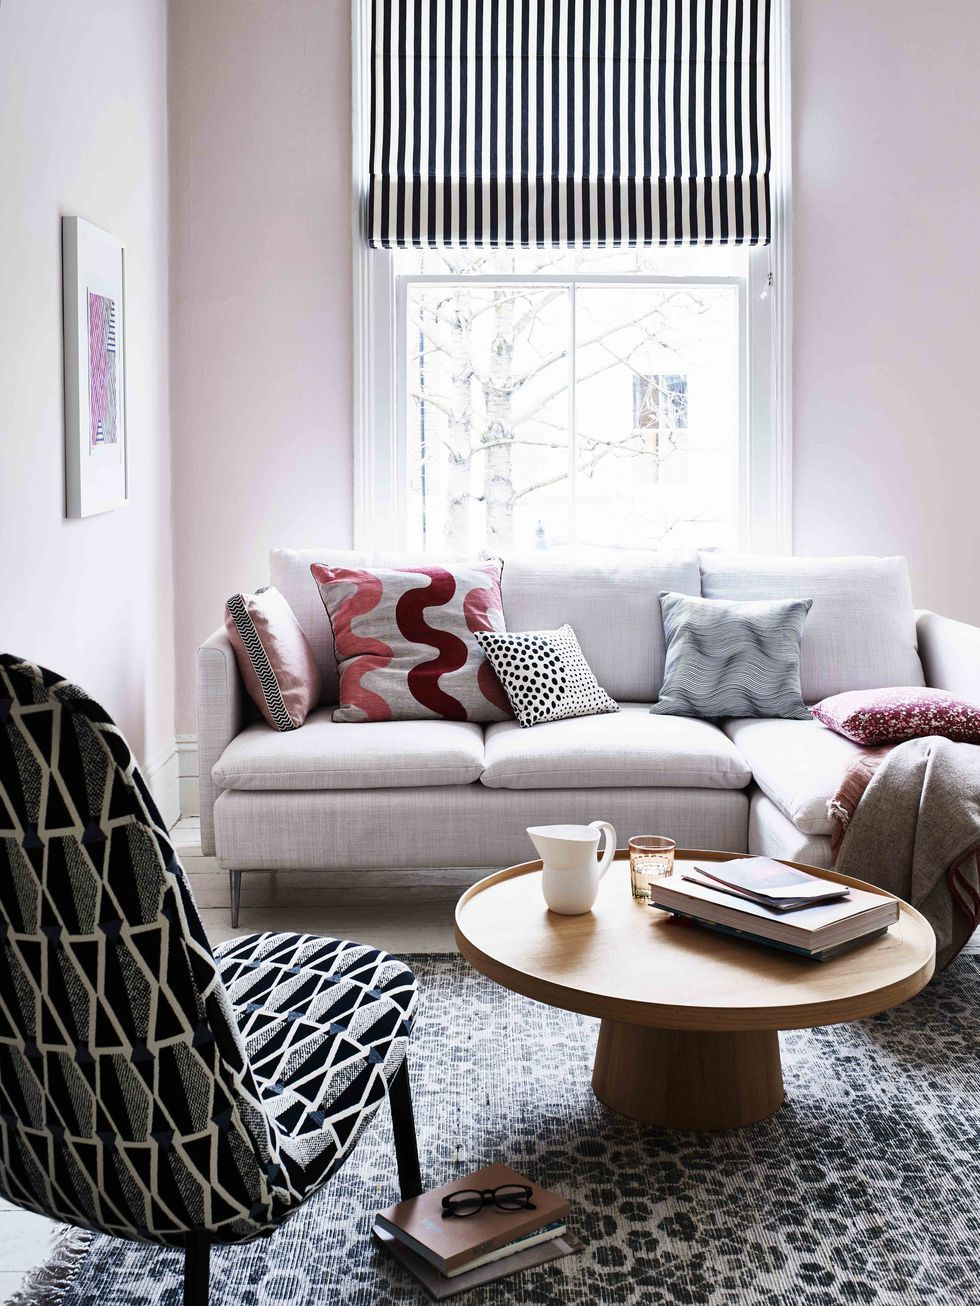 Living Room Sitting Room Front Room Or Lounge What Do You Call This Communal Space Small Living Room Decor Small Living Room Design Living Room Designs Living room or lounge